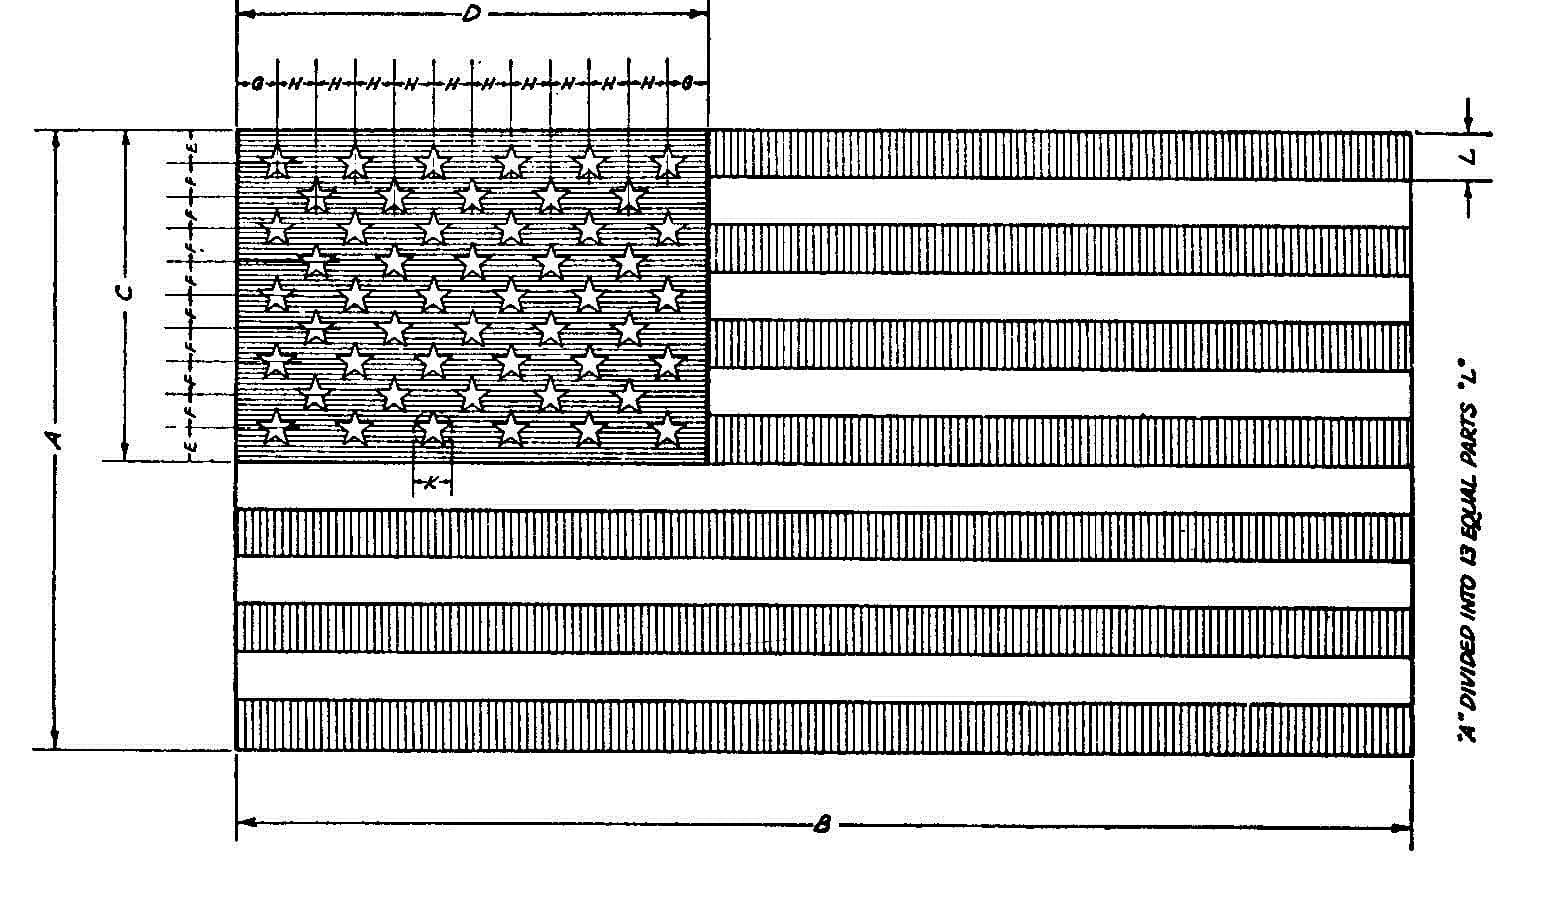 Official US Flag dimensions from the US flag code